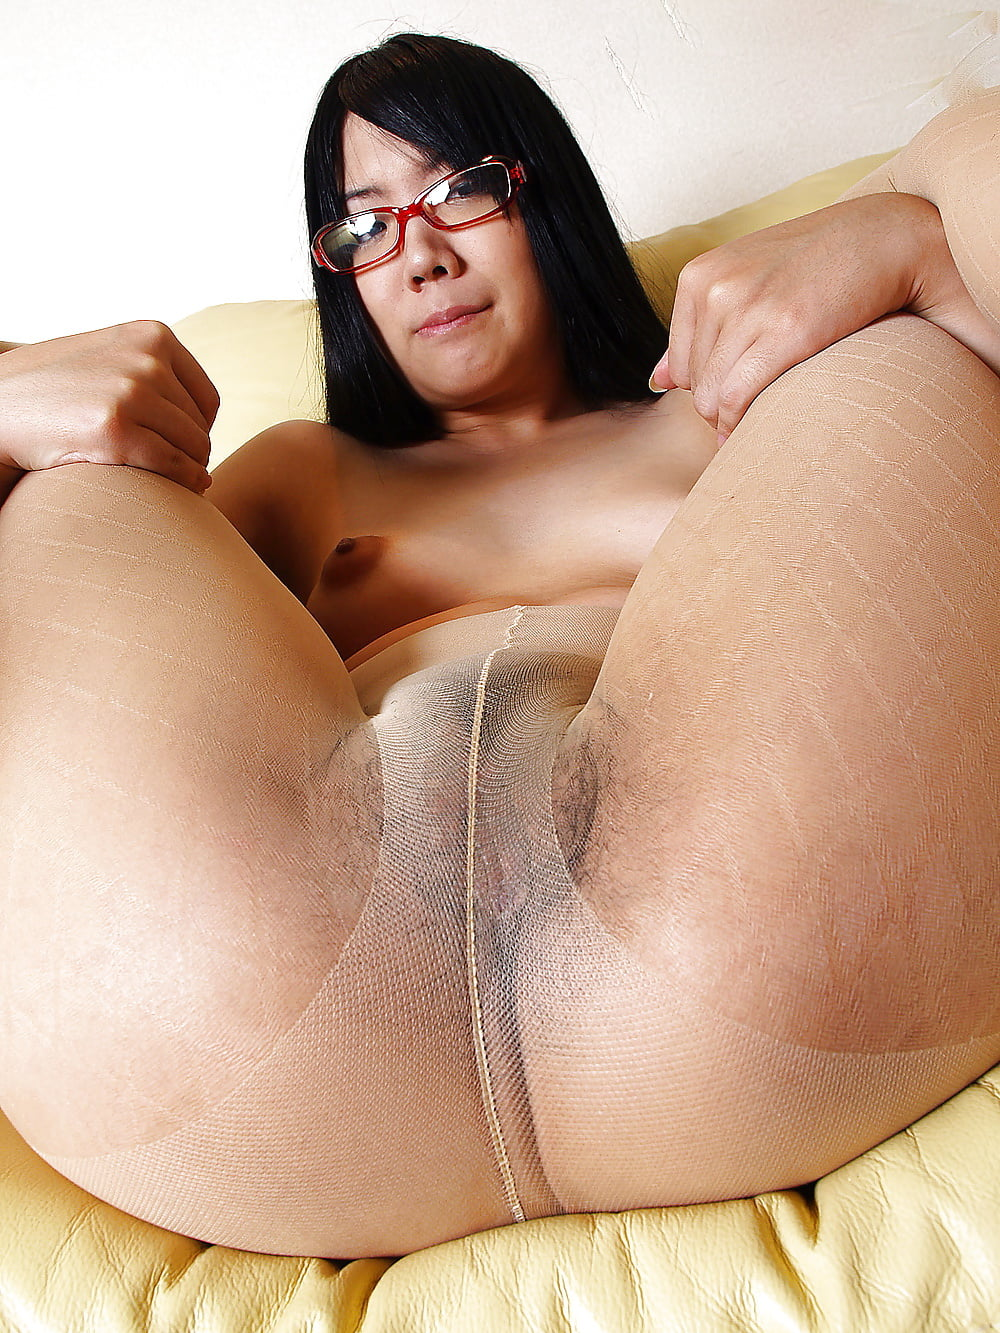 Plump asian women sex